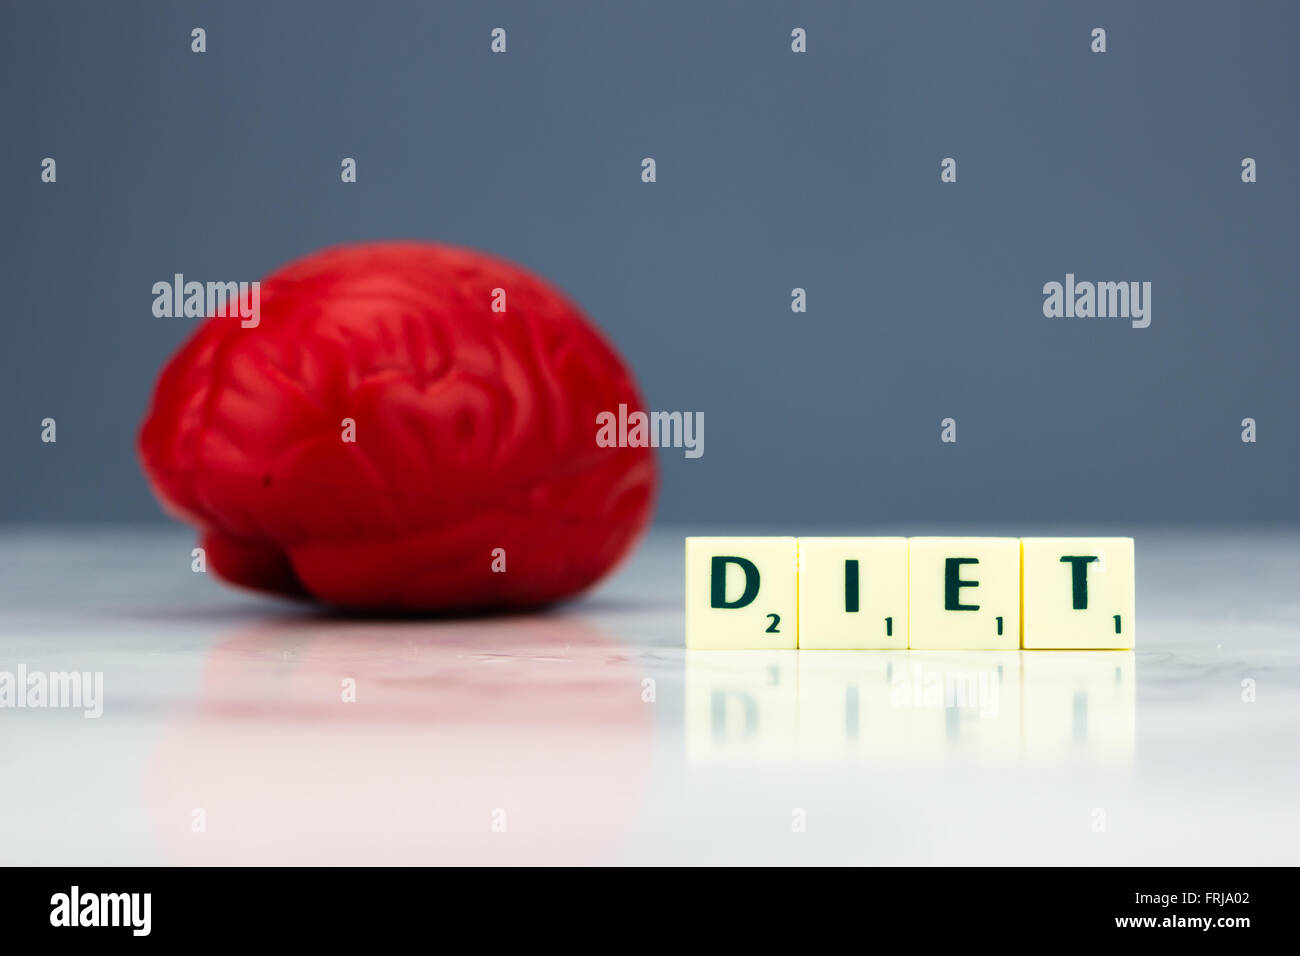 Red brain with diet sign on dark background - Stock Image